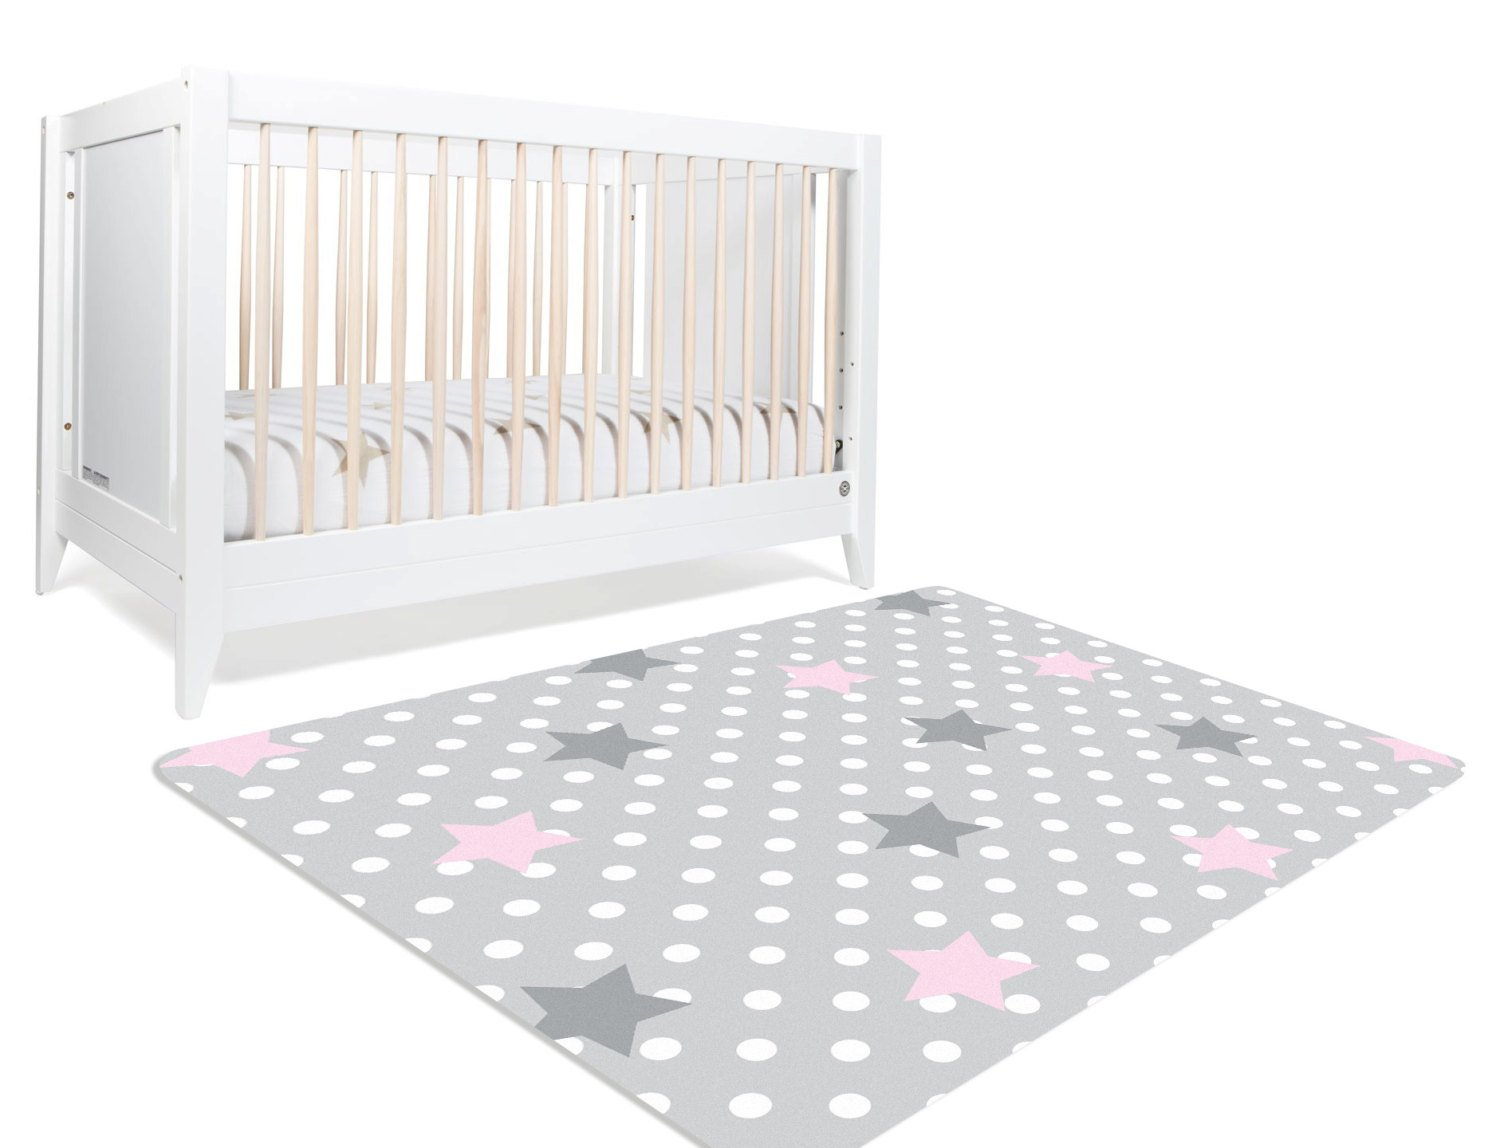 Star Rug, Moon And Stars Nursery, Star Nursery, Pink And Grey Nursery